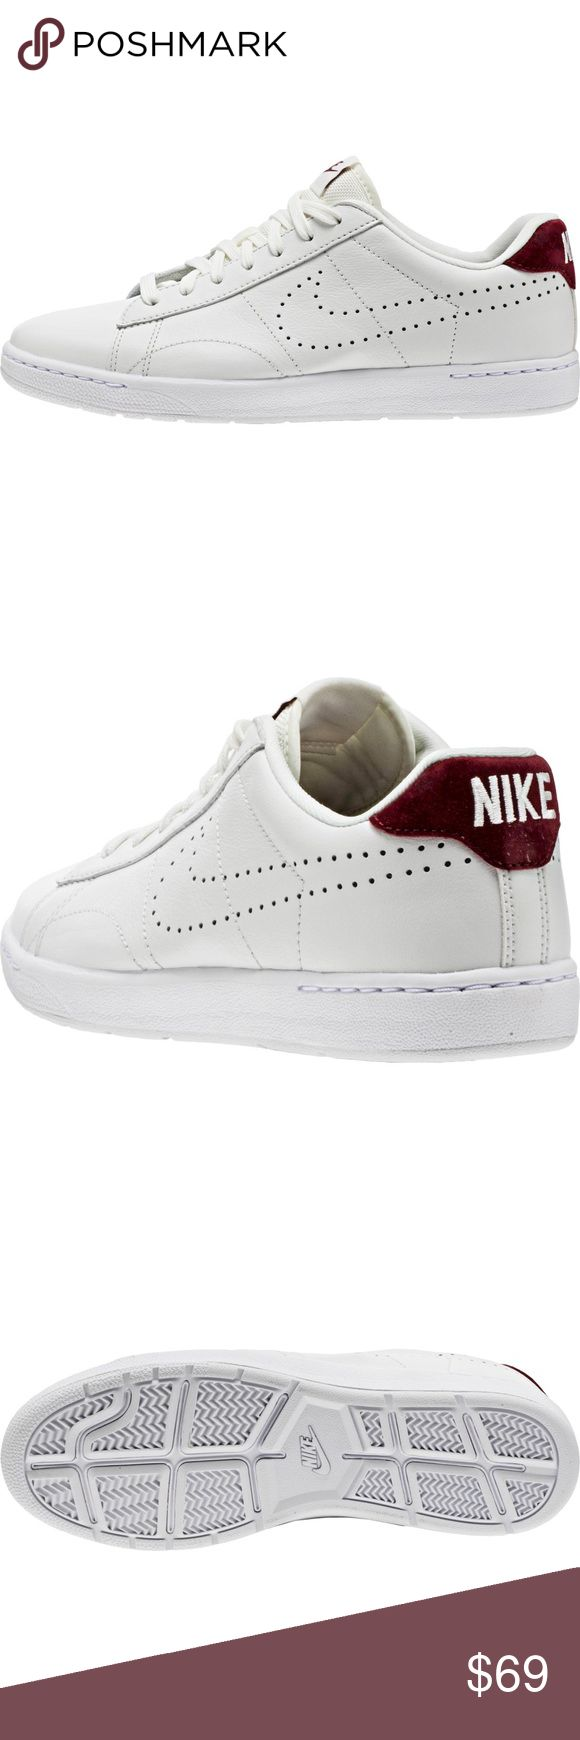 NIKE TENNIS CLASSIC ULTRA LEATHER NIKE TENNIS CLASSIC ULTRA LEATHER (MENS) - SUMMIT WHITE/TEAM RED/WHITE/SUMMIT WHITE Nike Shoes Sneakers